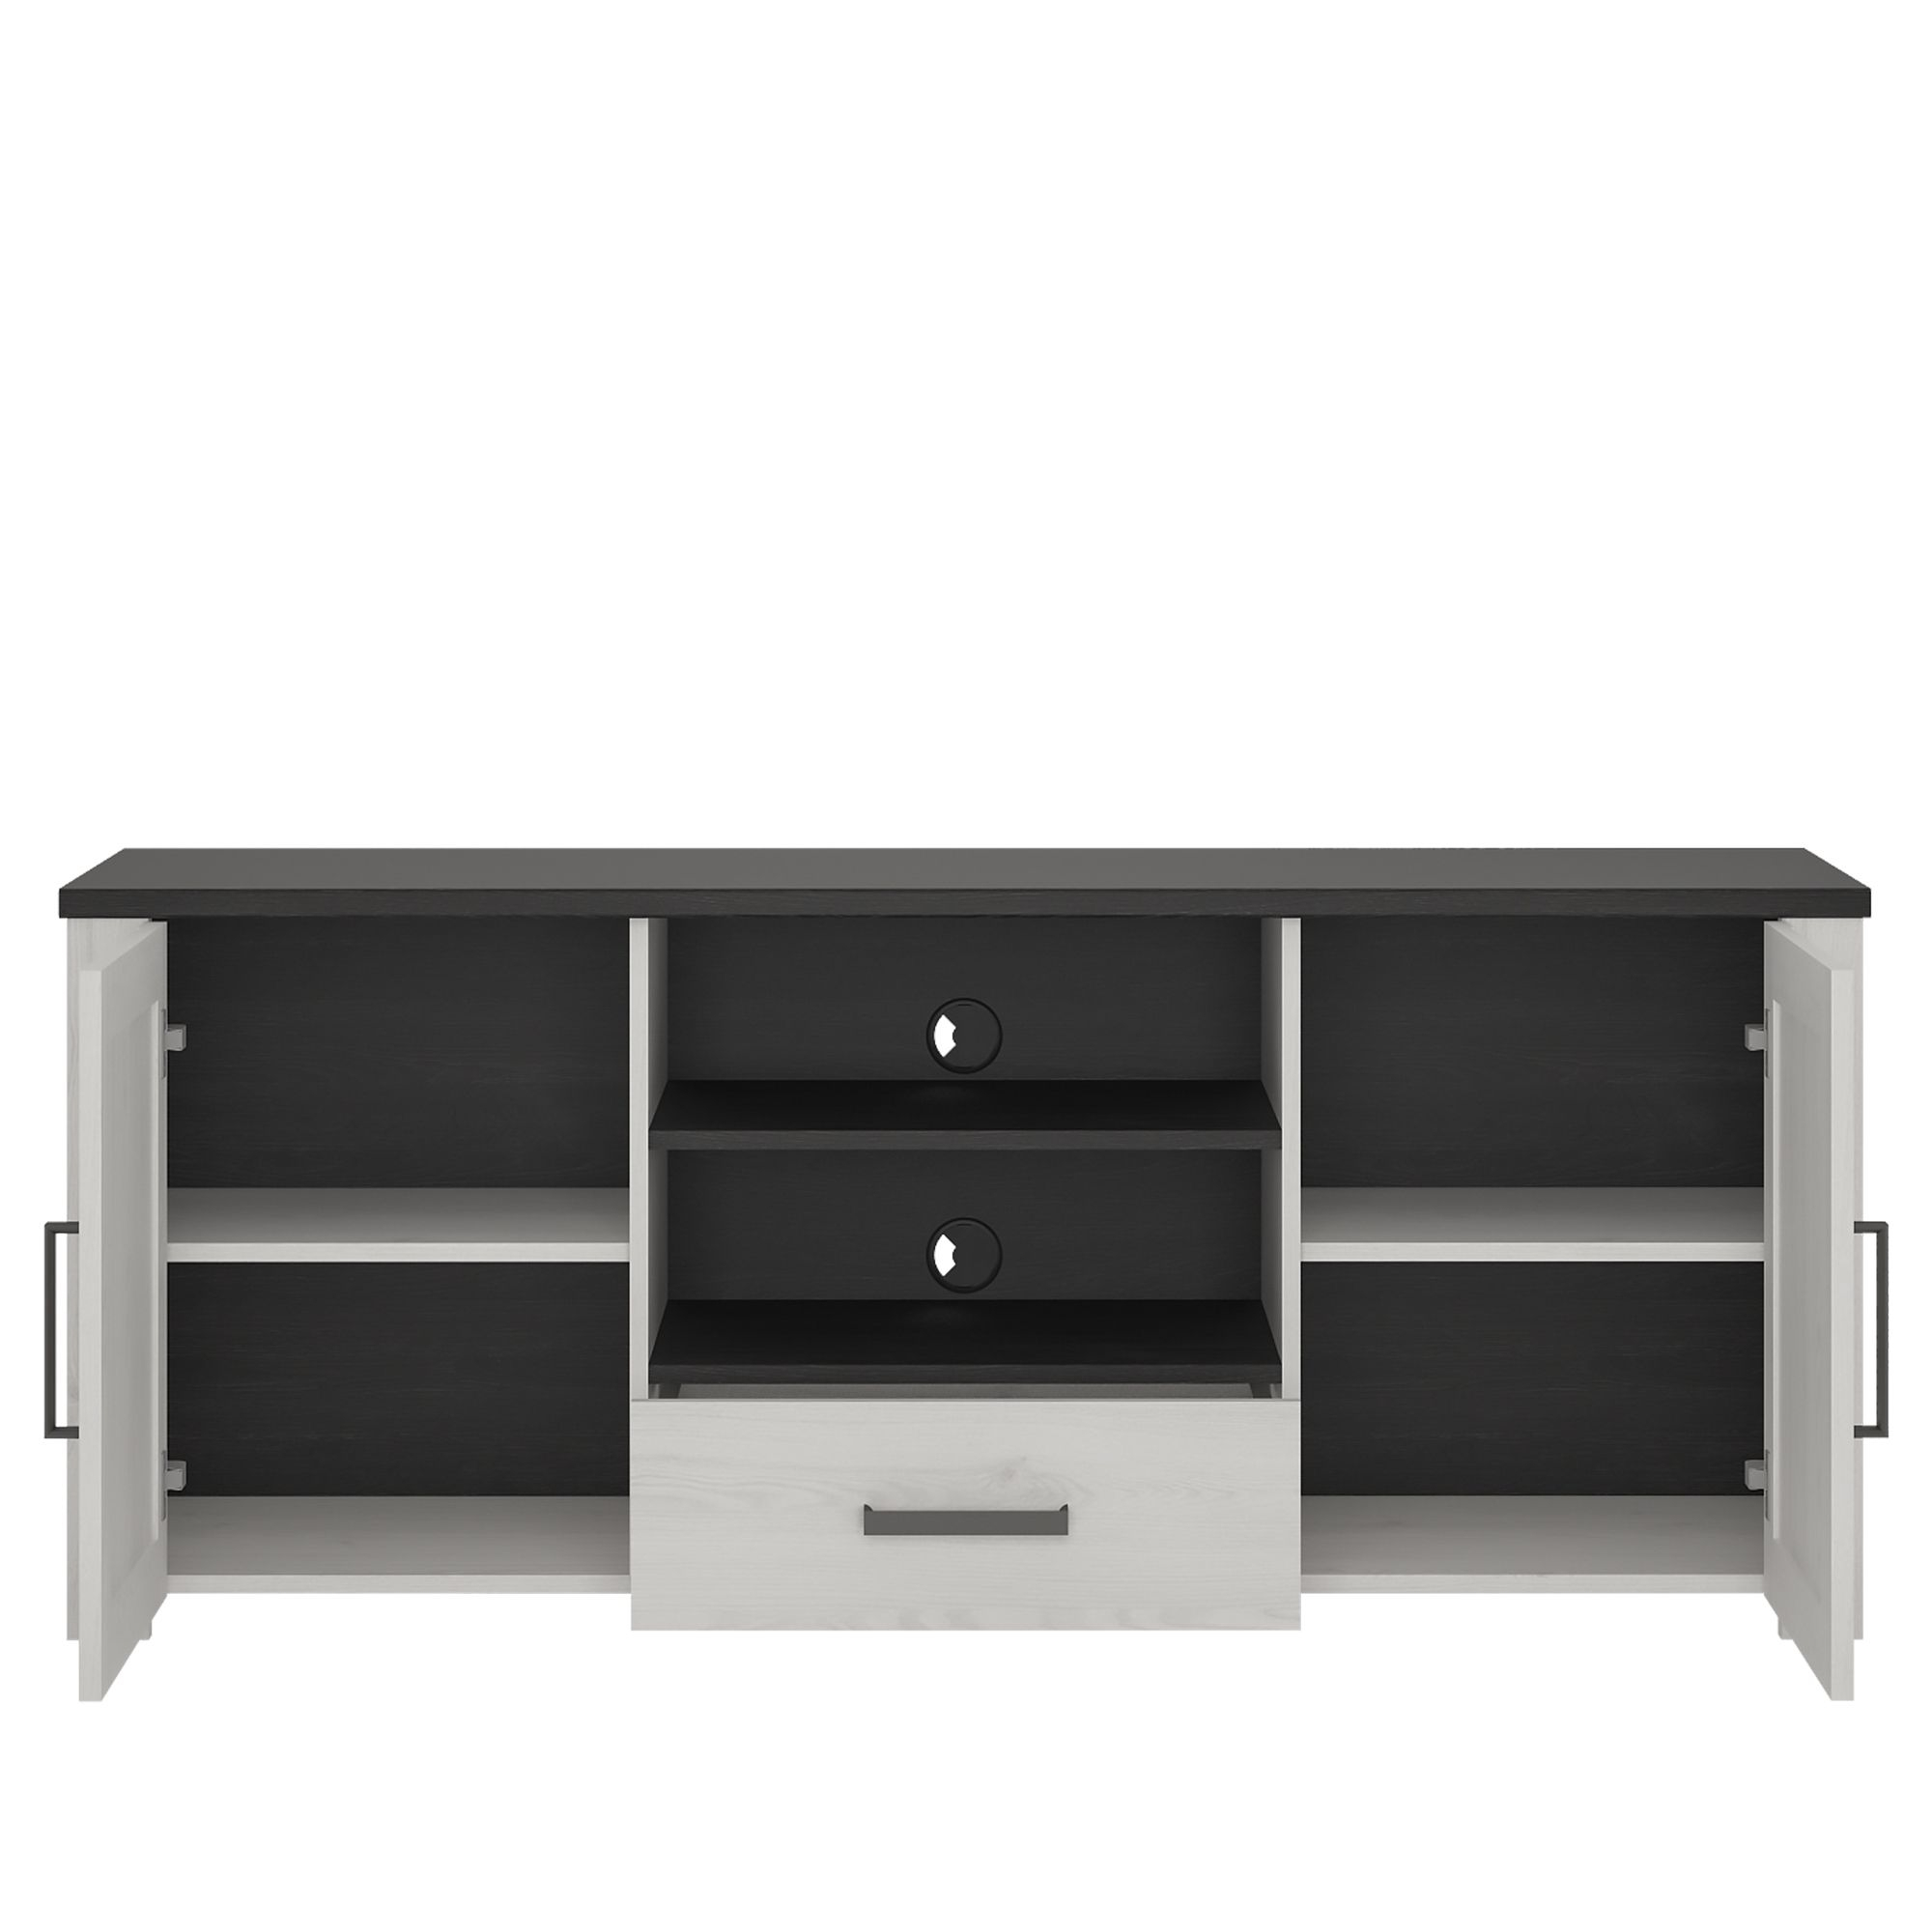 Provence High Tv Cabinet 2 Door 1 Drawer Pertaining To Tiva Ladder Tv Stands (View 4 of 11)